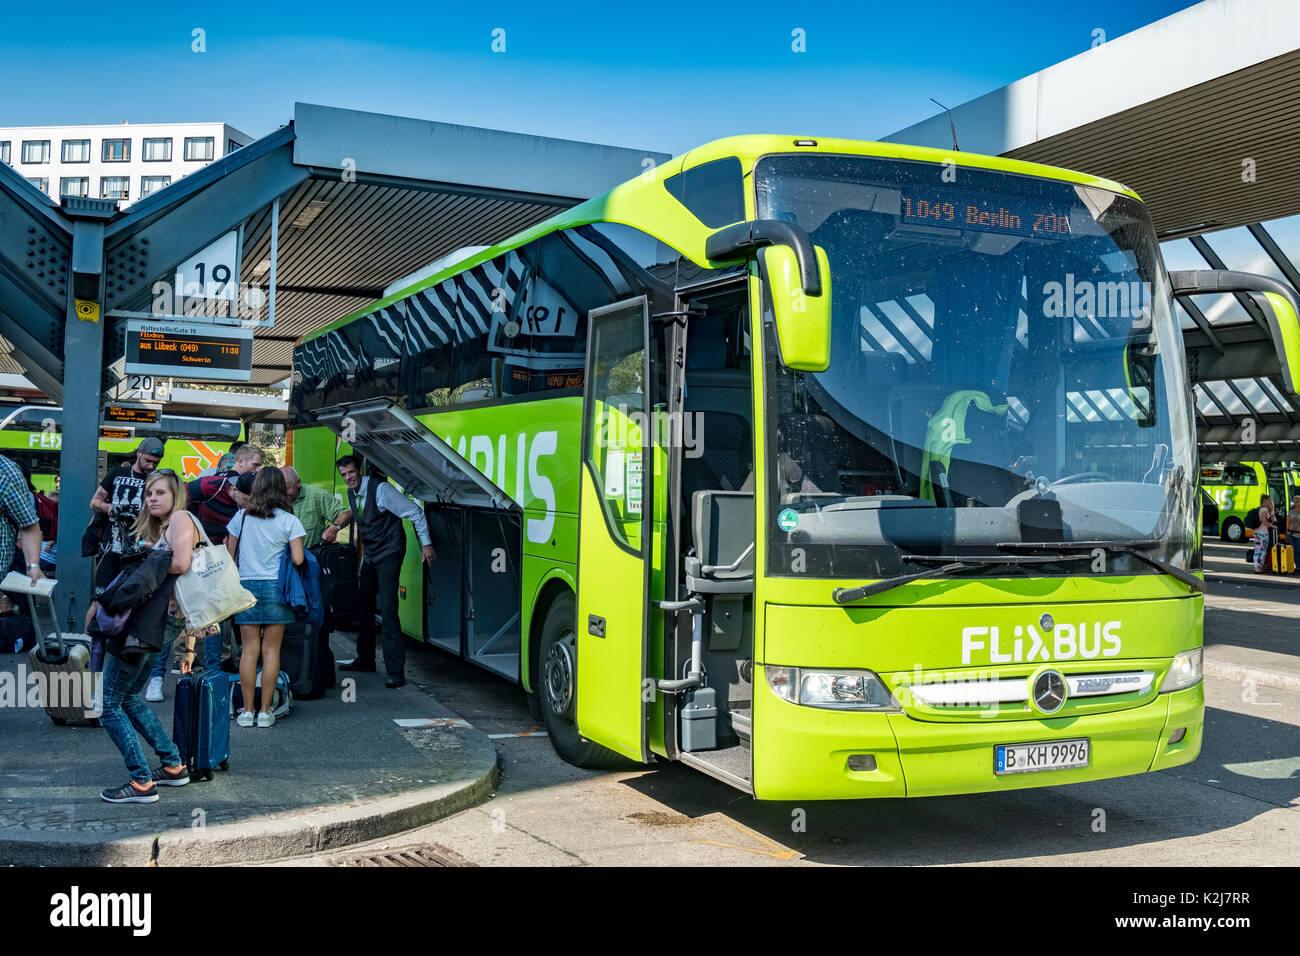 Passengers disembarking from Flixbus at Berlin coach station in Germany - Stock Image